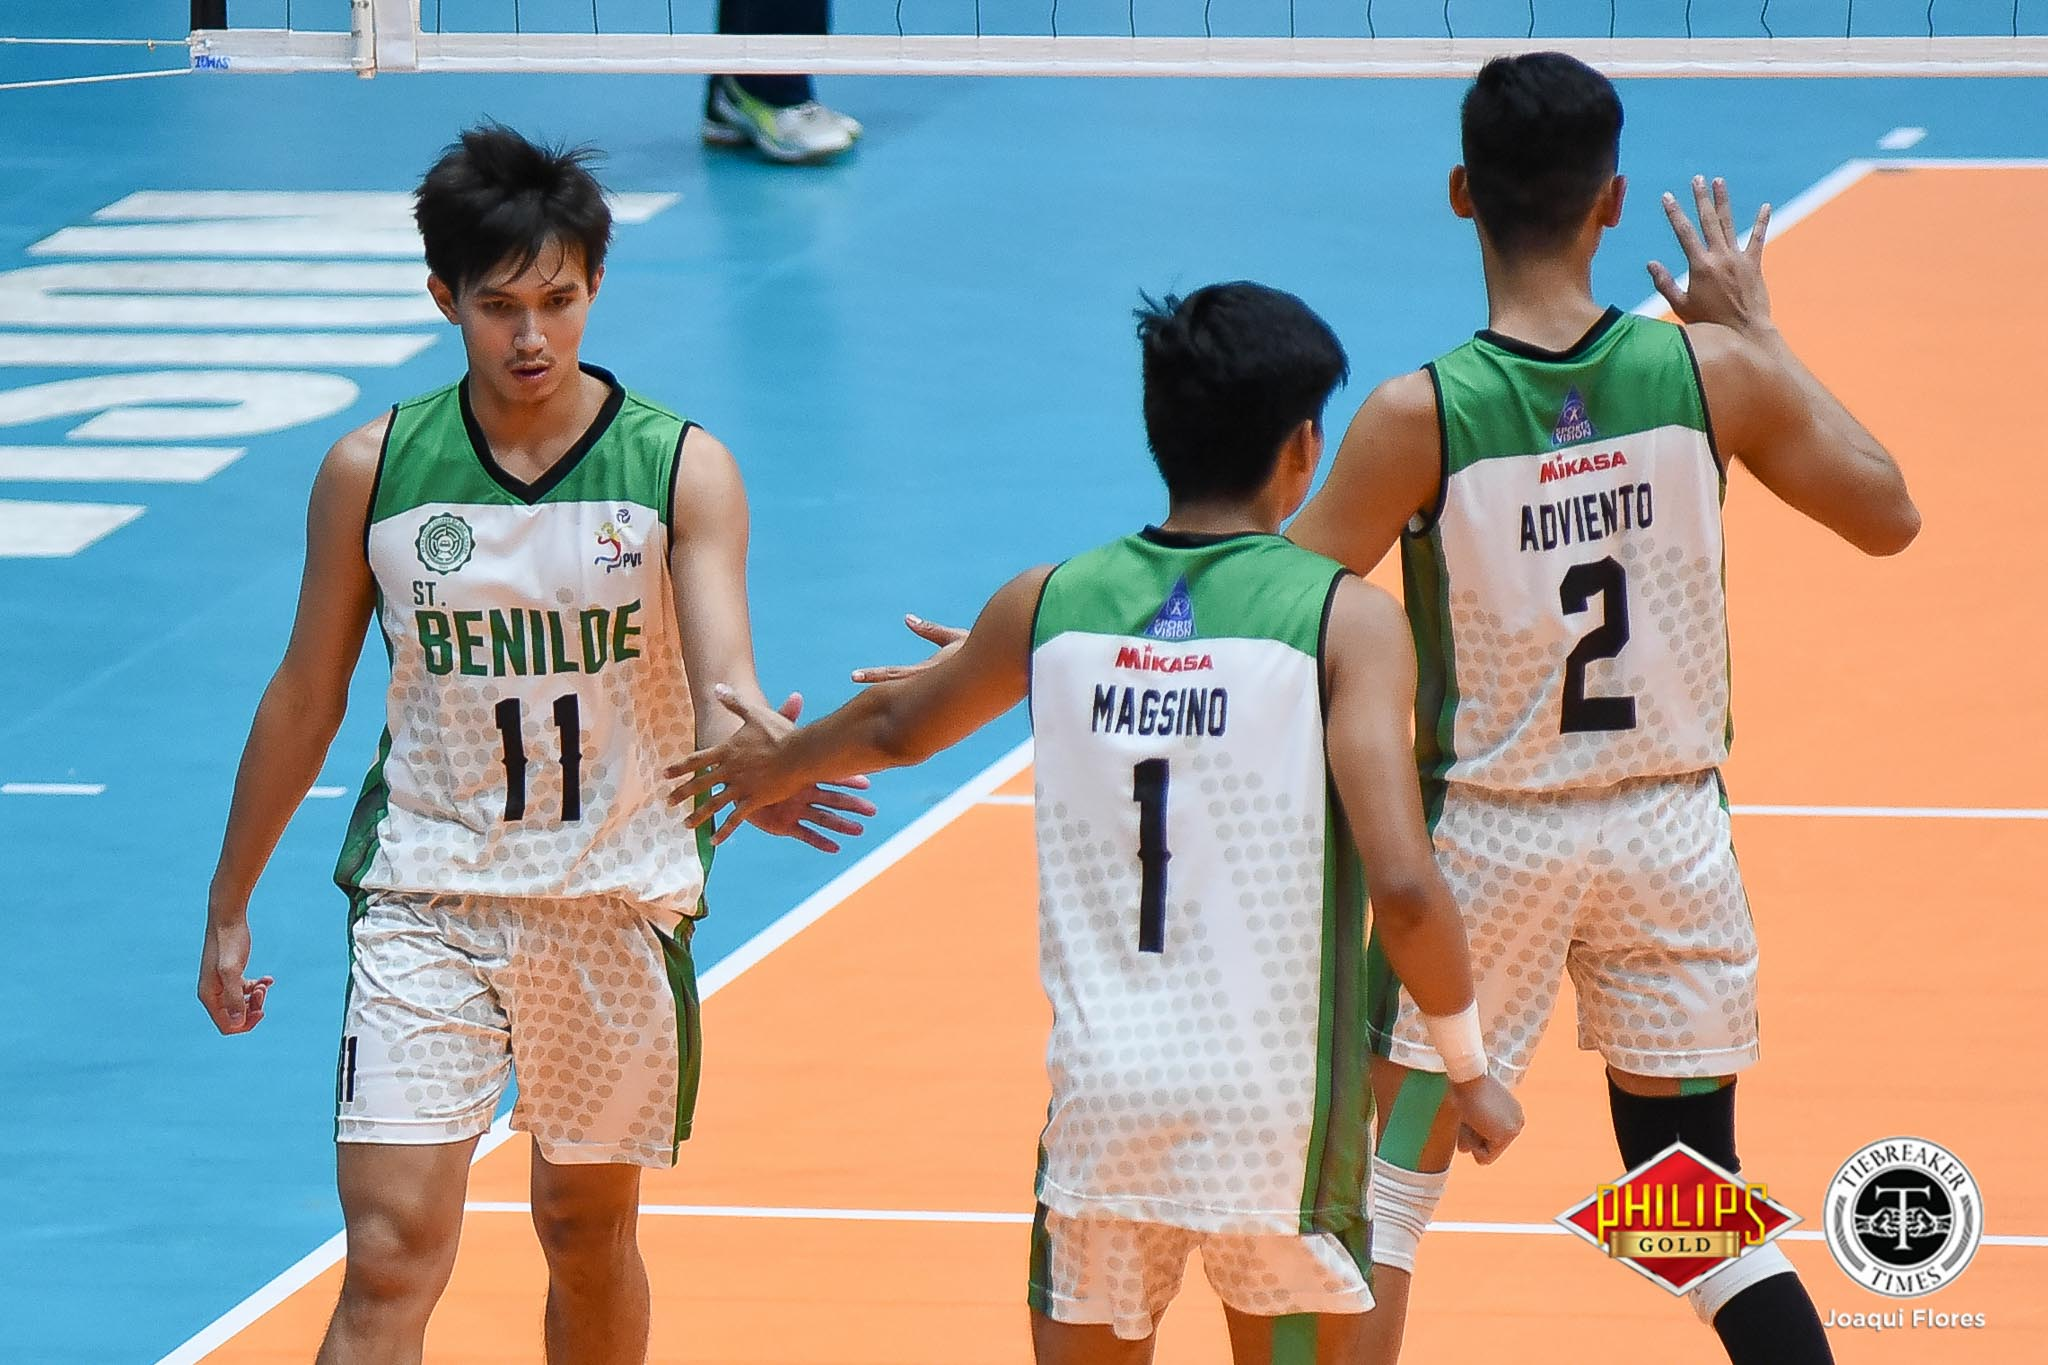 Tiebreaker Times Saint Benilde books Finals ticket at EAC's expense CSB EAC NCAA News Volleyball  Vince Abrot Saint Benilde Men's Volleyball Rod Palmero NCAA Season 94 Men's Volleyball NCAA Season 94 Kevin Magsino Joshua Ramilo Joshua Miña Francis Basilan EAC Men's Volleyball Arnold Laniog Adrian Dy